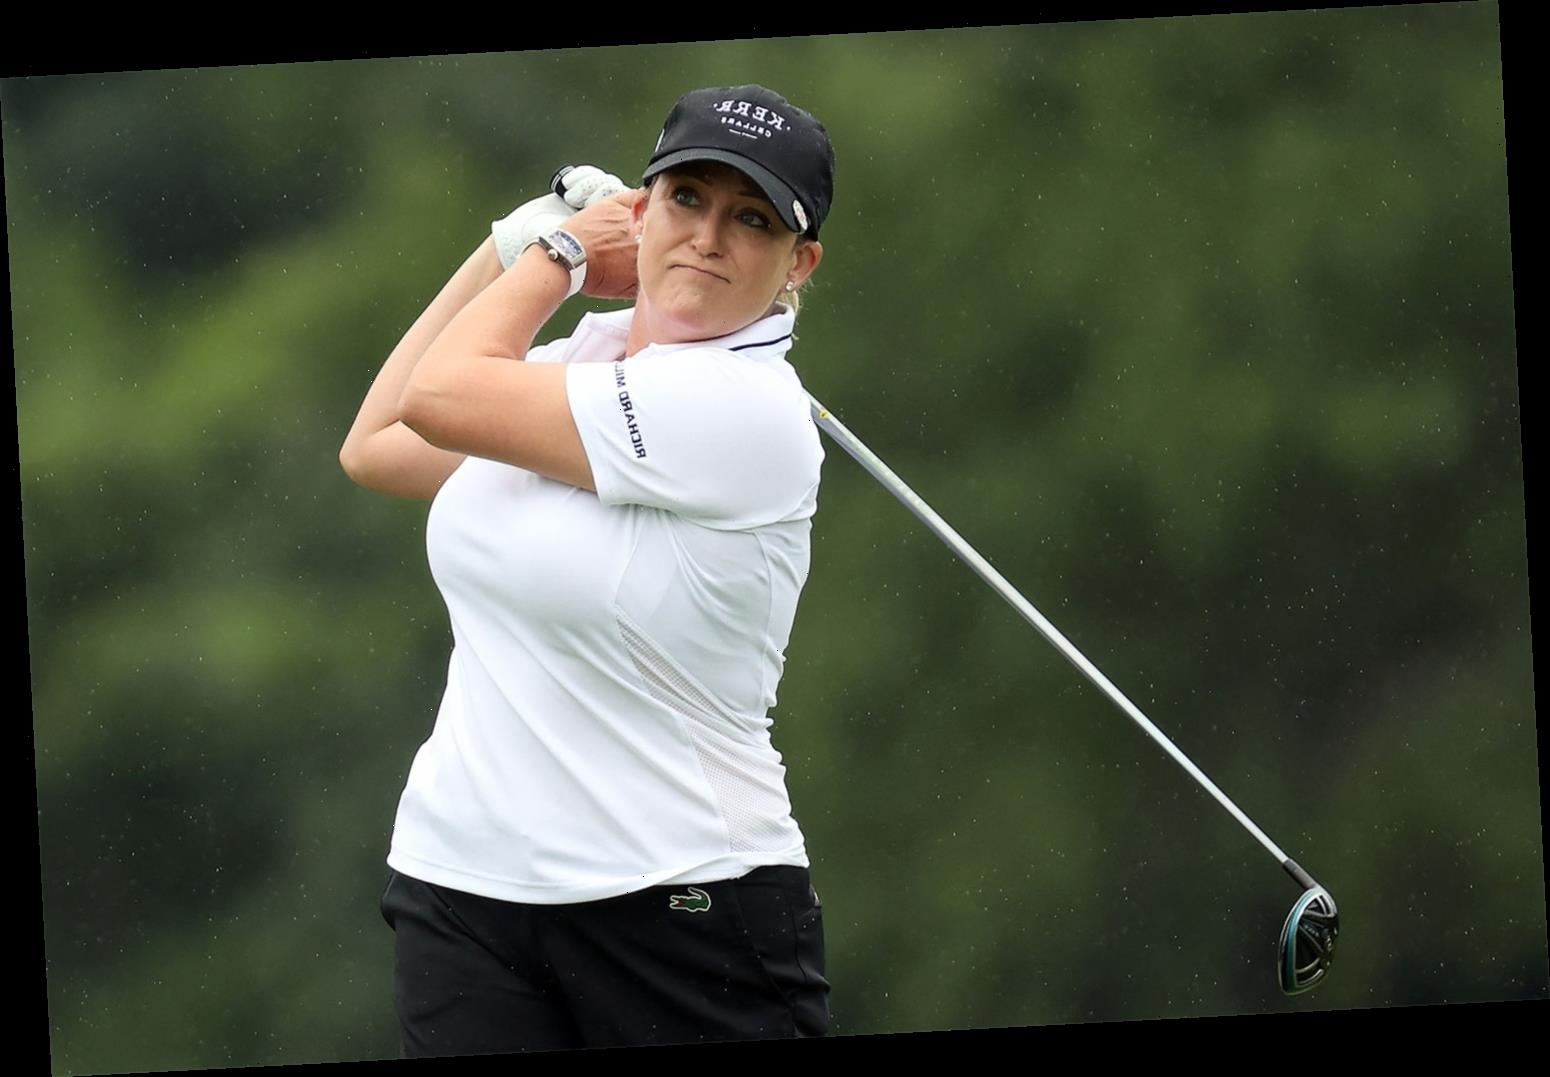 LPGA Star Cristie Kerr and Caddie Recovering After Being Hospitalized for Golf Cart Accident